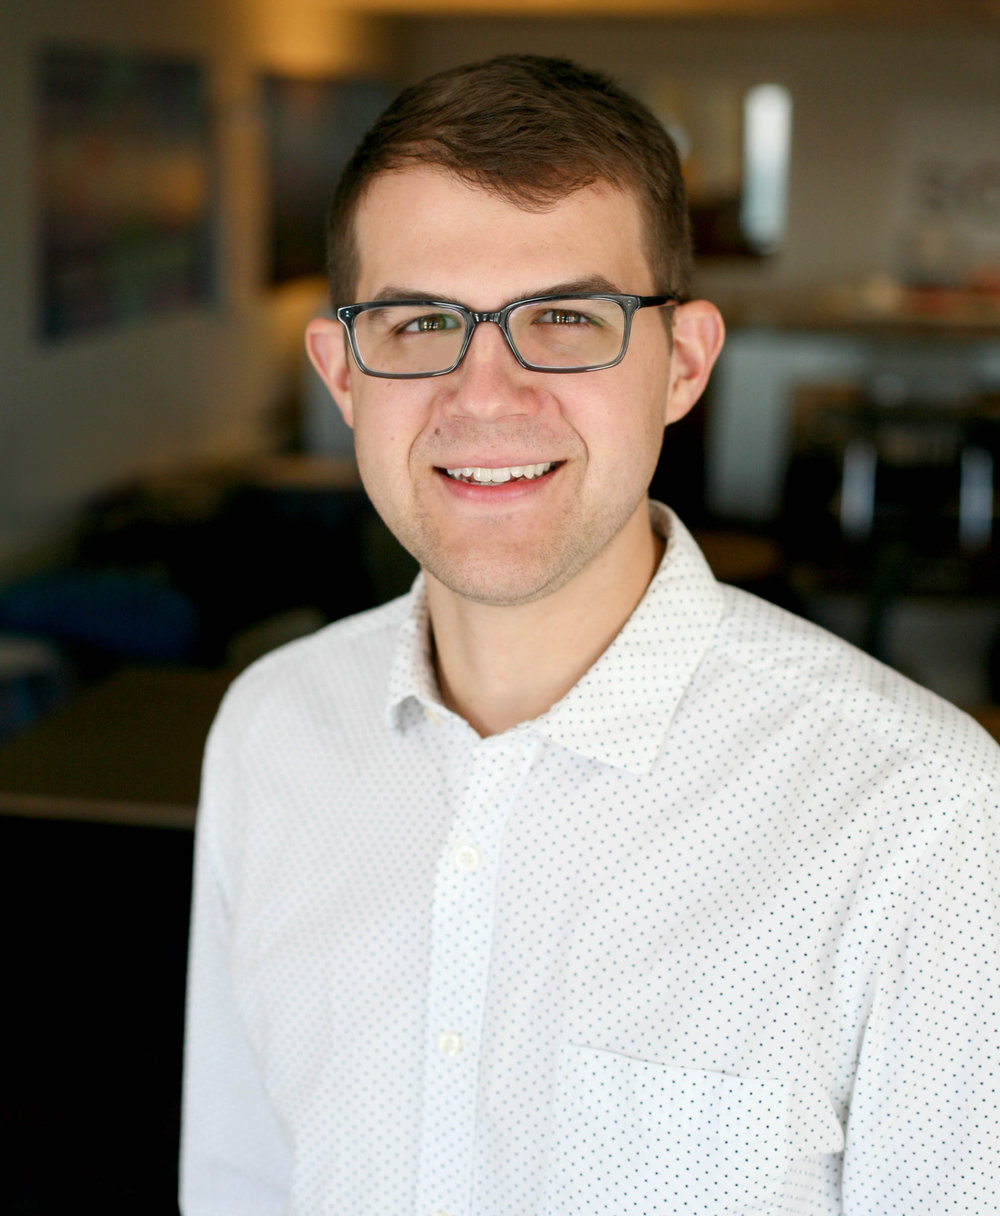 Jake FIELDS, ASSISTANT DIRECTOR, STUDENT ORGANIZATIONS AND ACTIVITIES